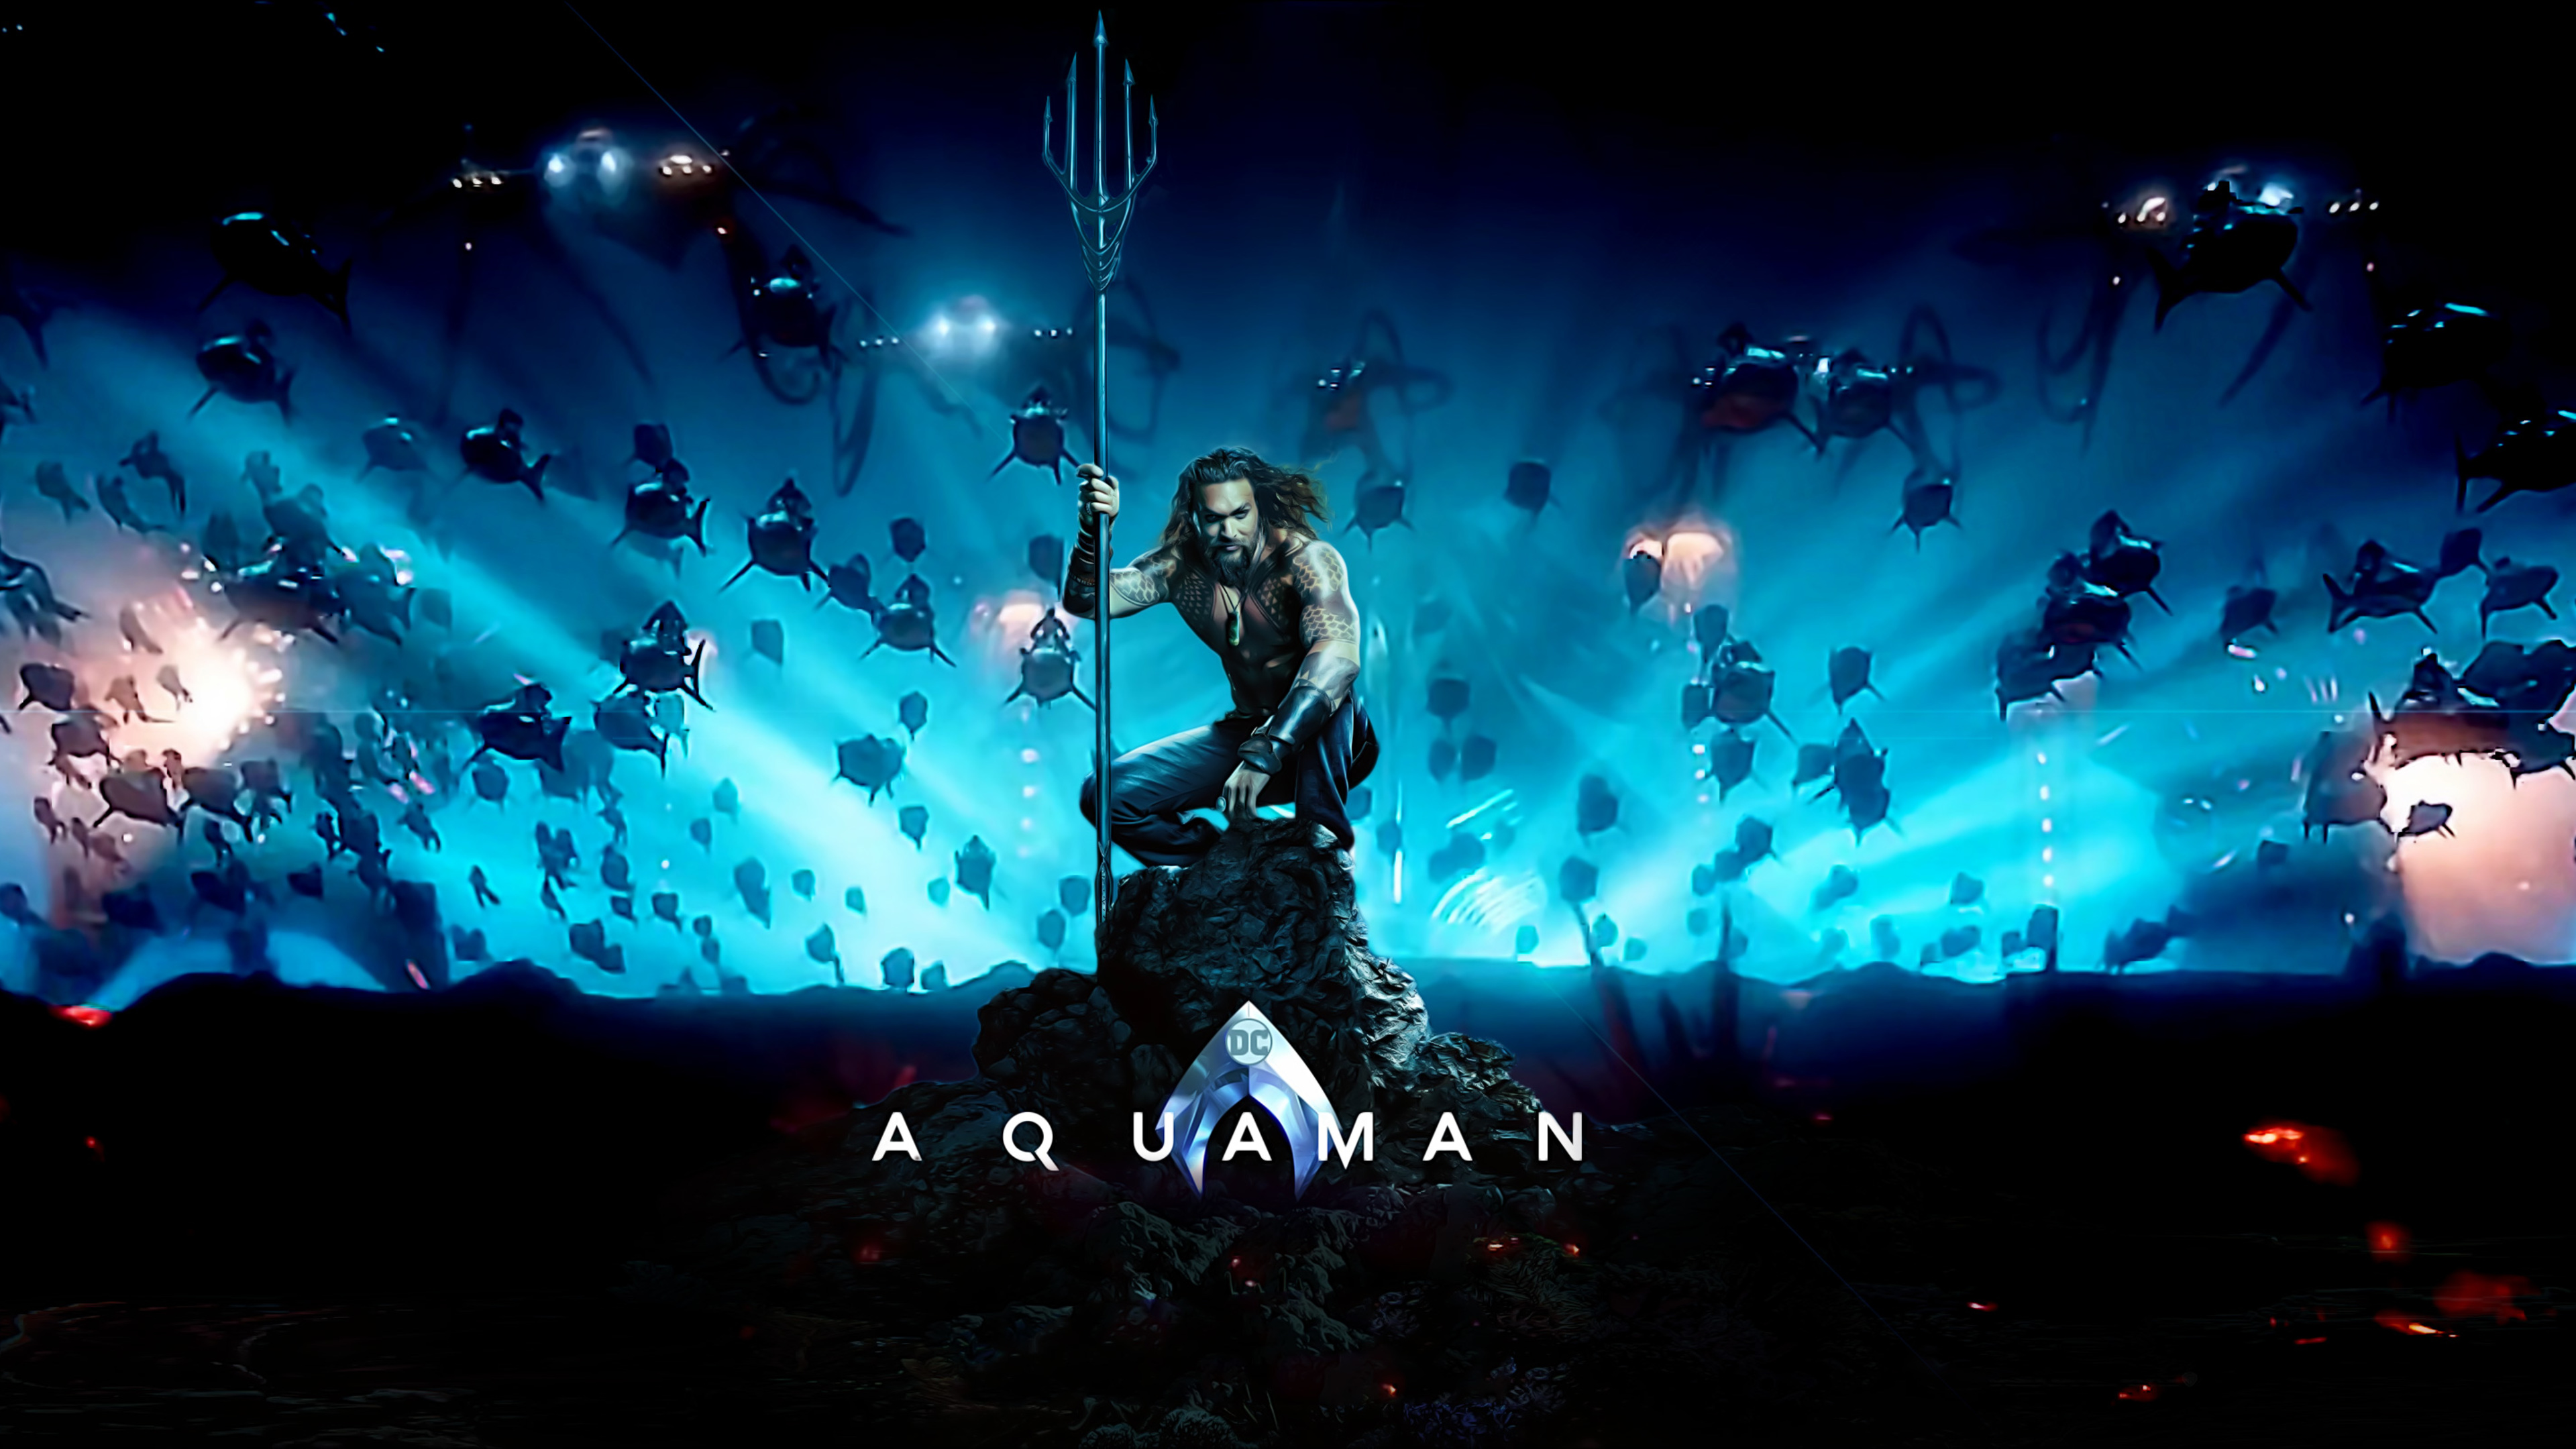 1280x1280 Car Wallpaper Aquaman Movie Poster Movies Wallpapers Jason Momoa